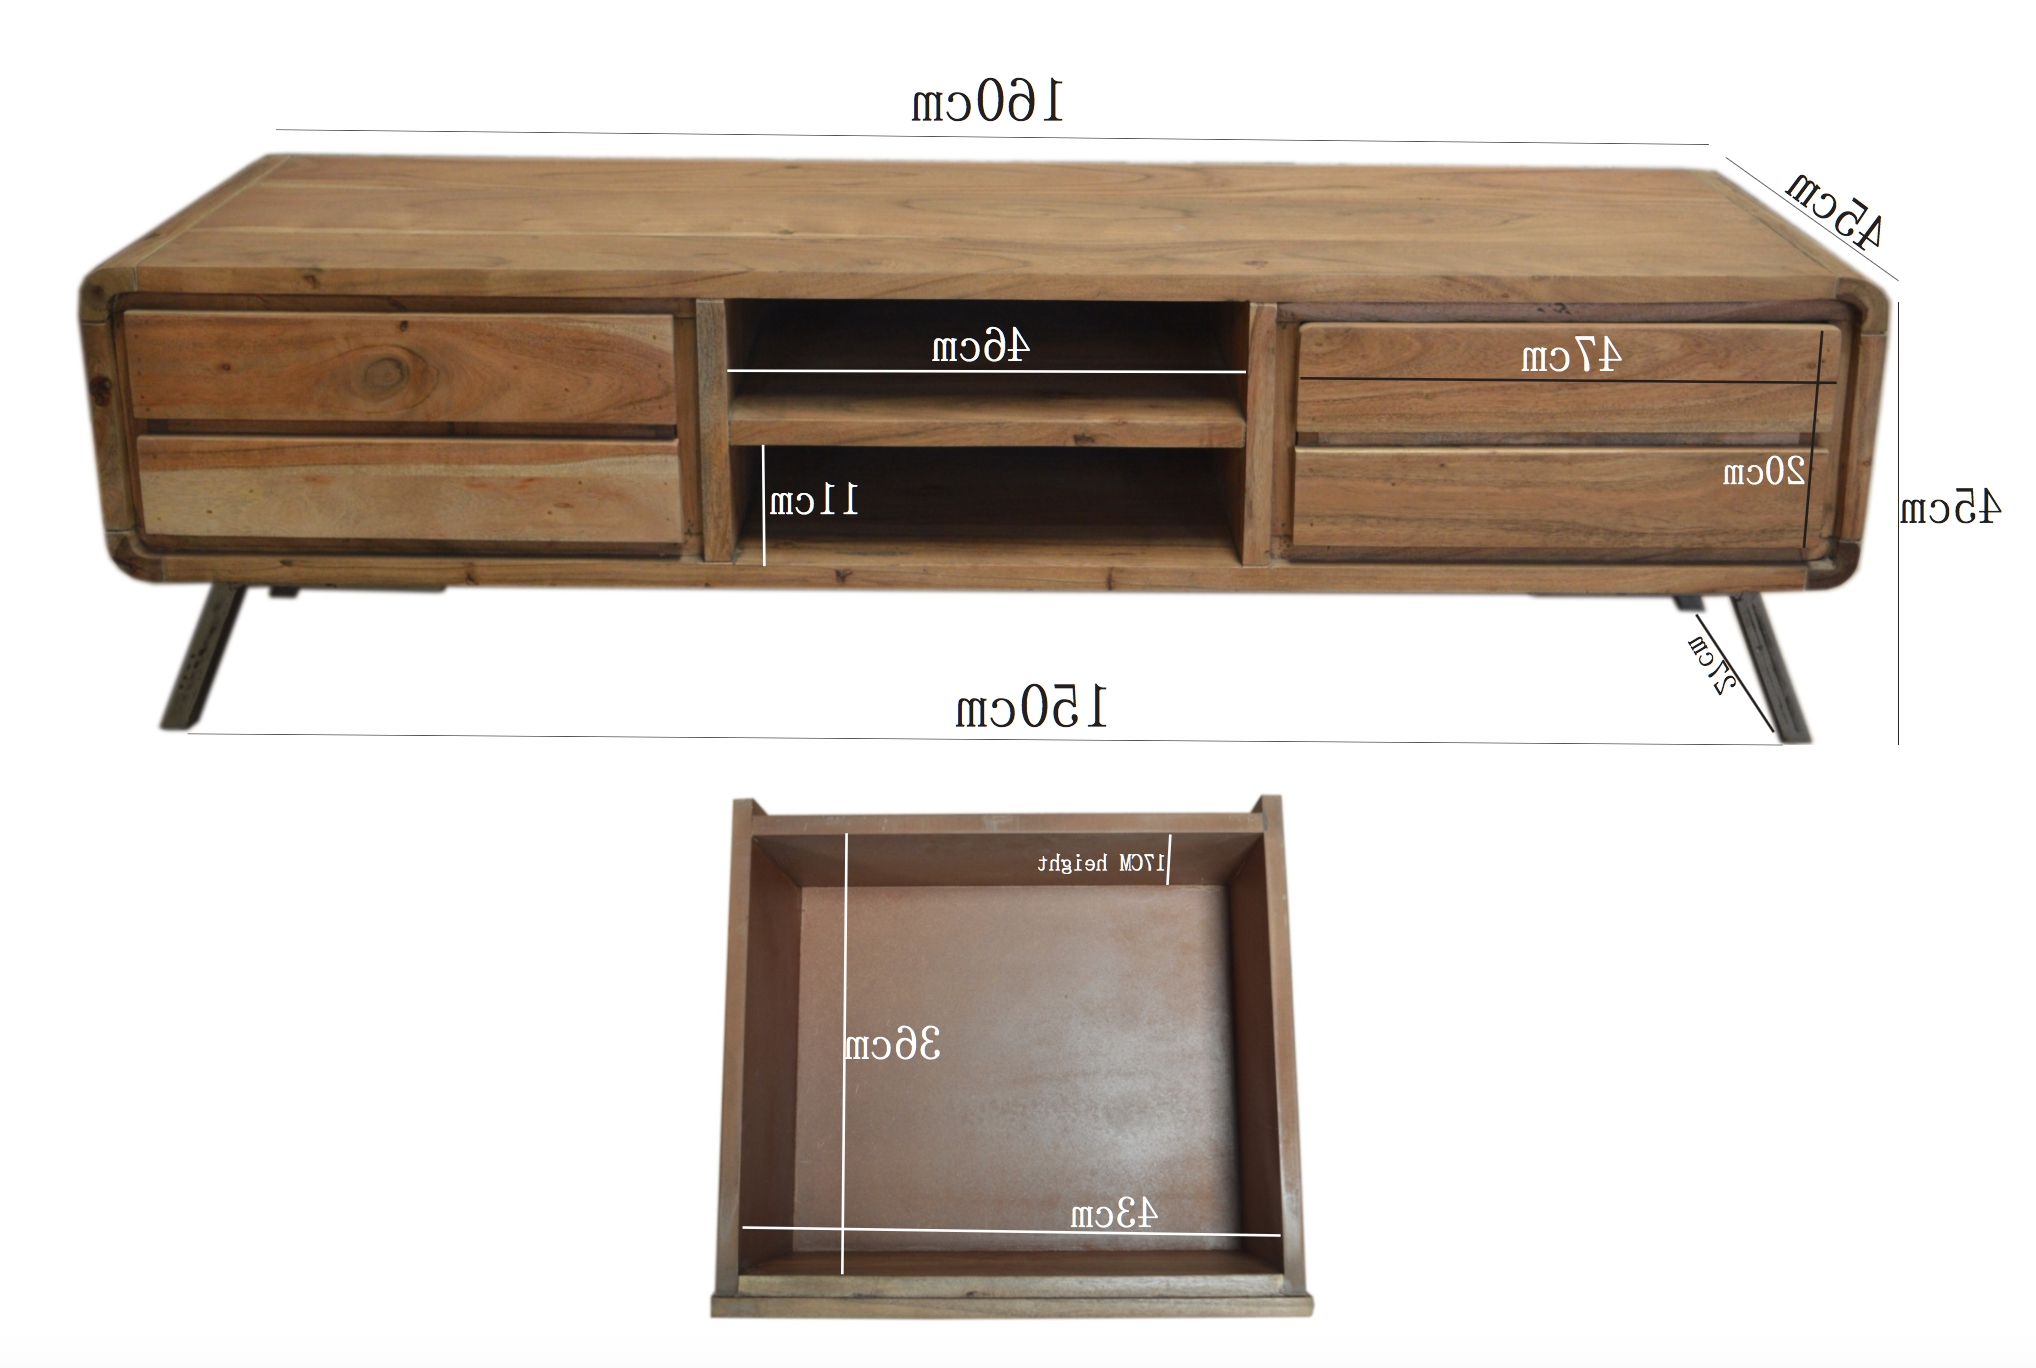 Industrial Furniture – Scandinavian Wooden Tv Cabinet Scandus With In Scandinavian Tv Stands (Gallery 14 of 15)